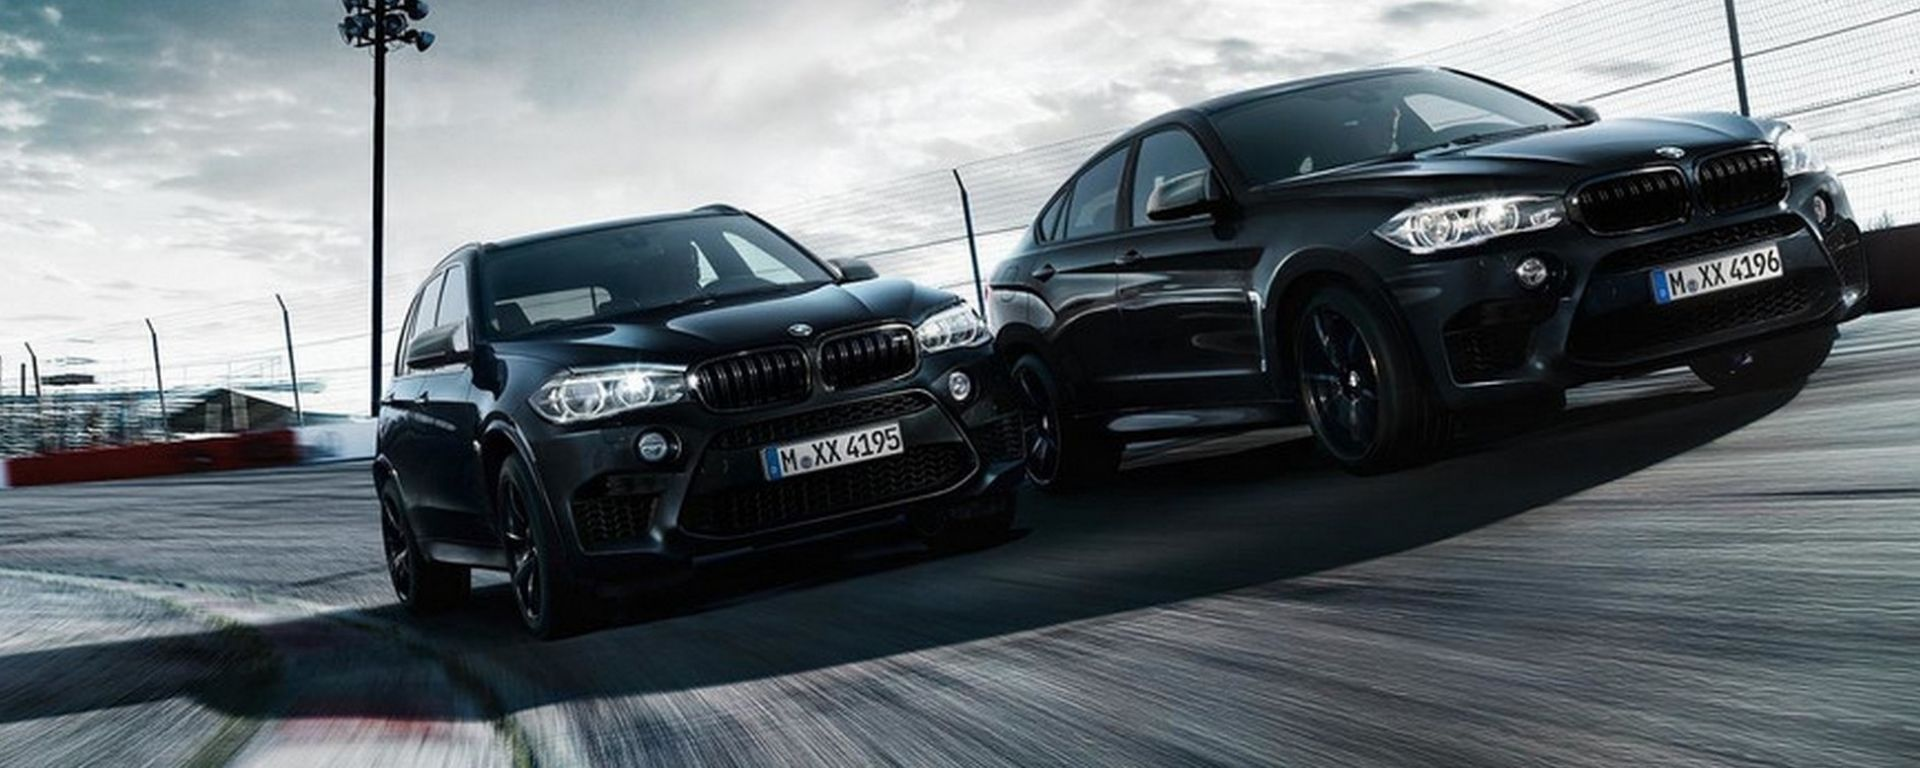 bmw x5 m e x6 m black fire edition suv alla massima potenza motorbox. Black Bedroom Furniture Sets. Home Design Ideas